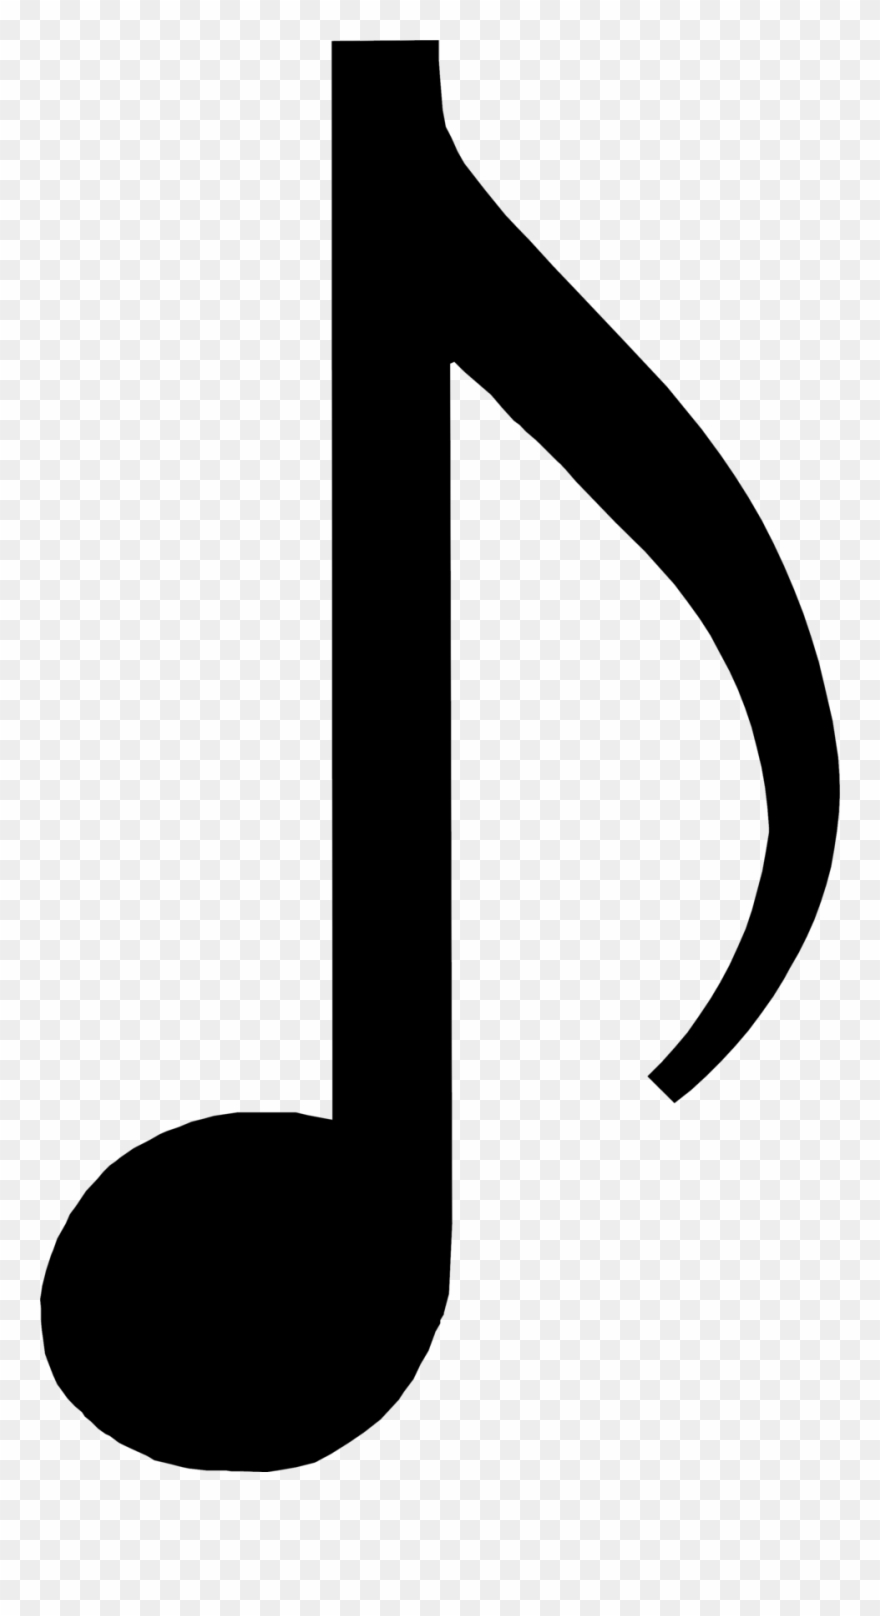 - Svg Freeuse Download Clipart Music Notes Free - Music Note